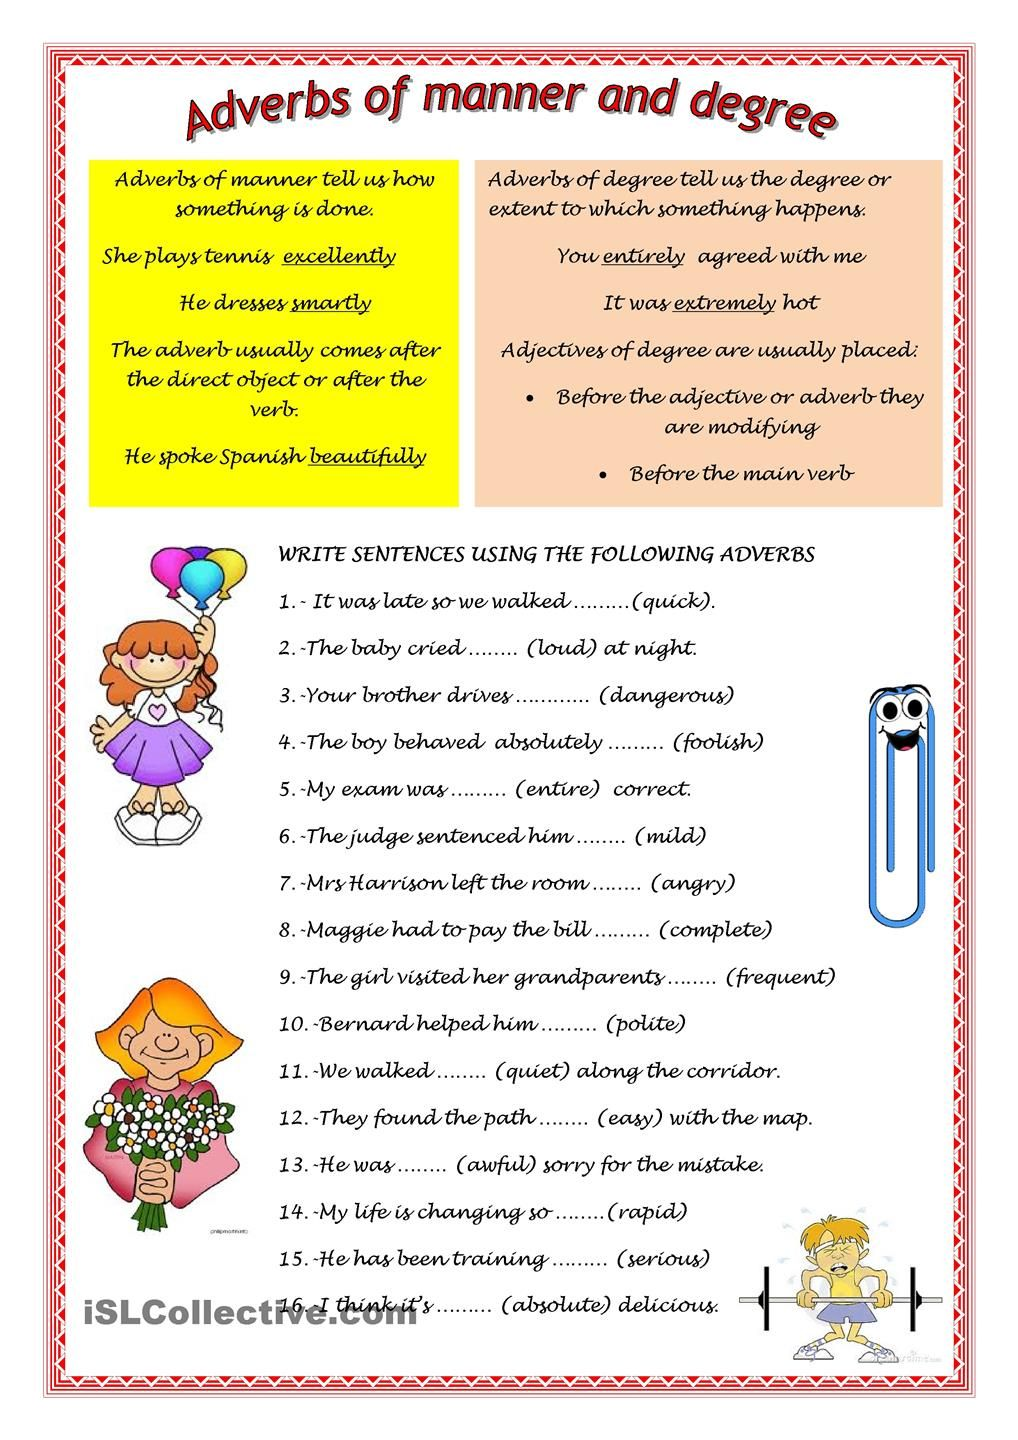 Worksheet Adverbs Worksheets For Grade 3 adverbs worksheets for grade 3 with answers coffemix